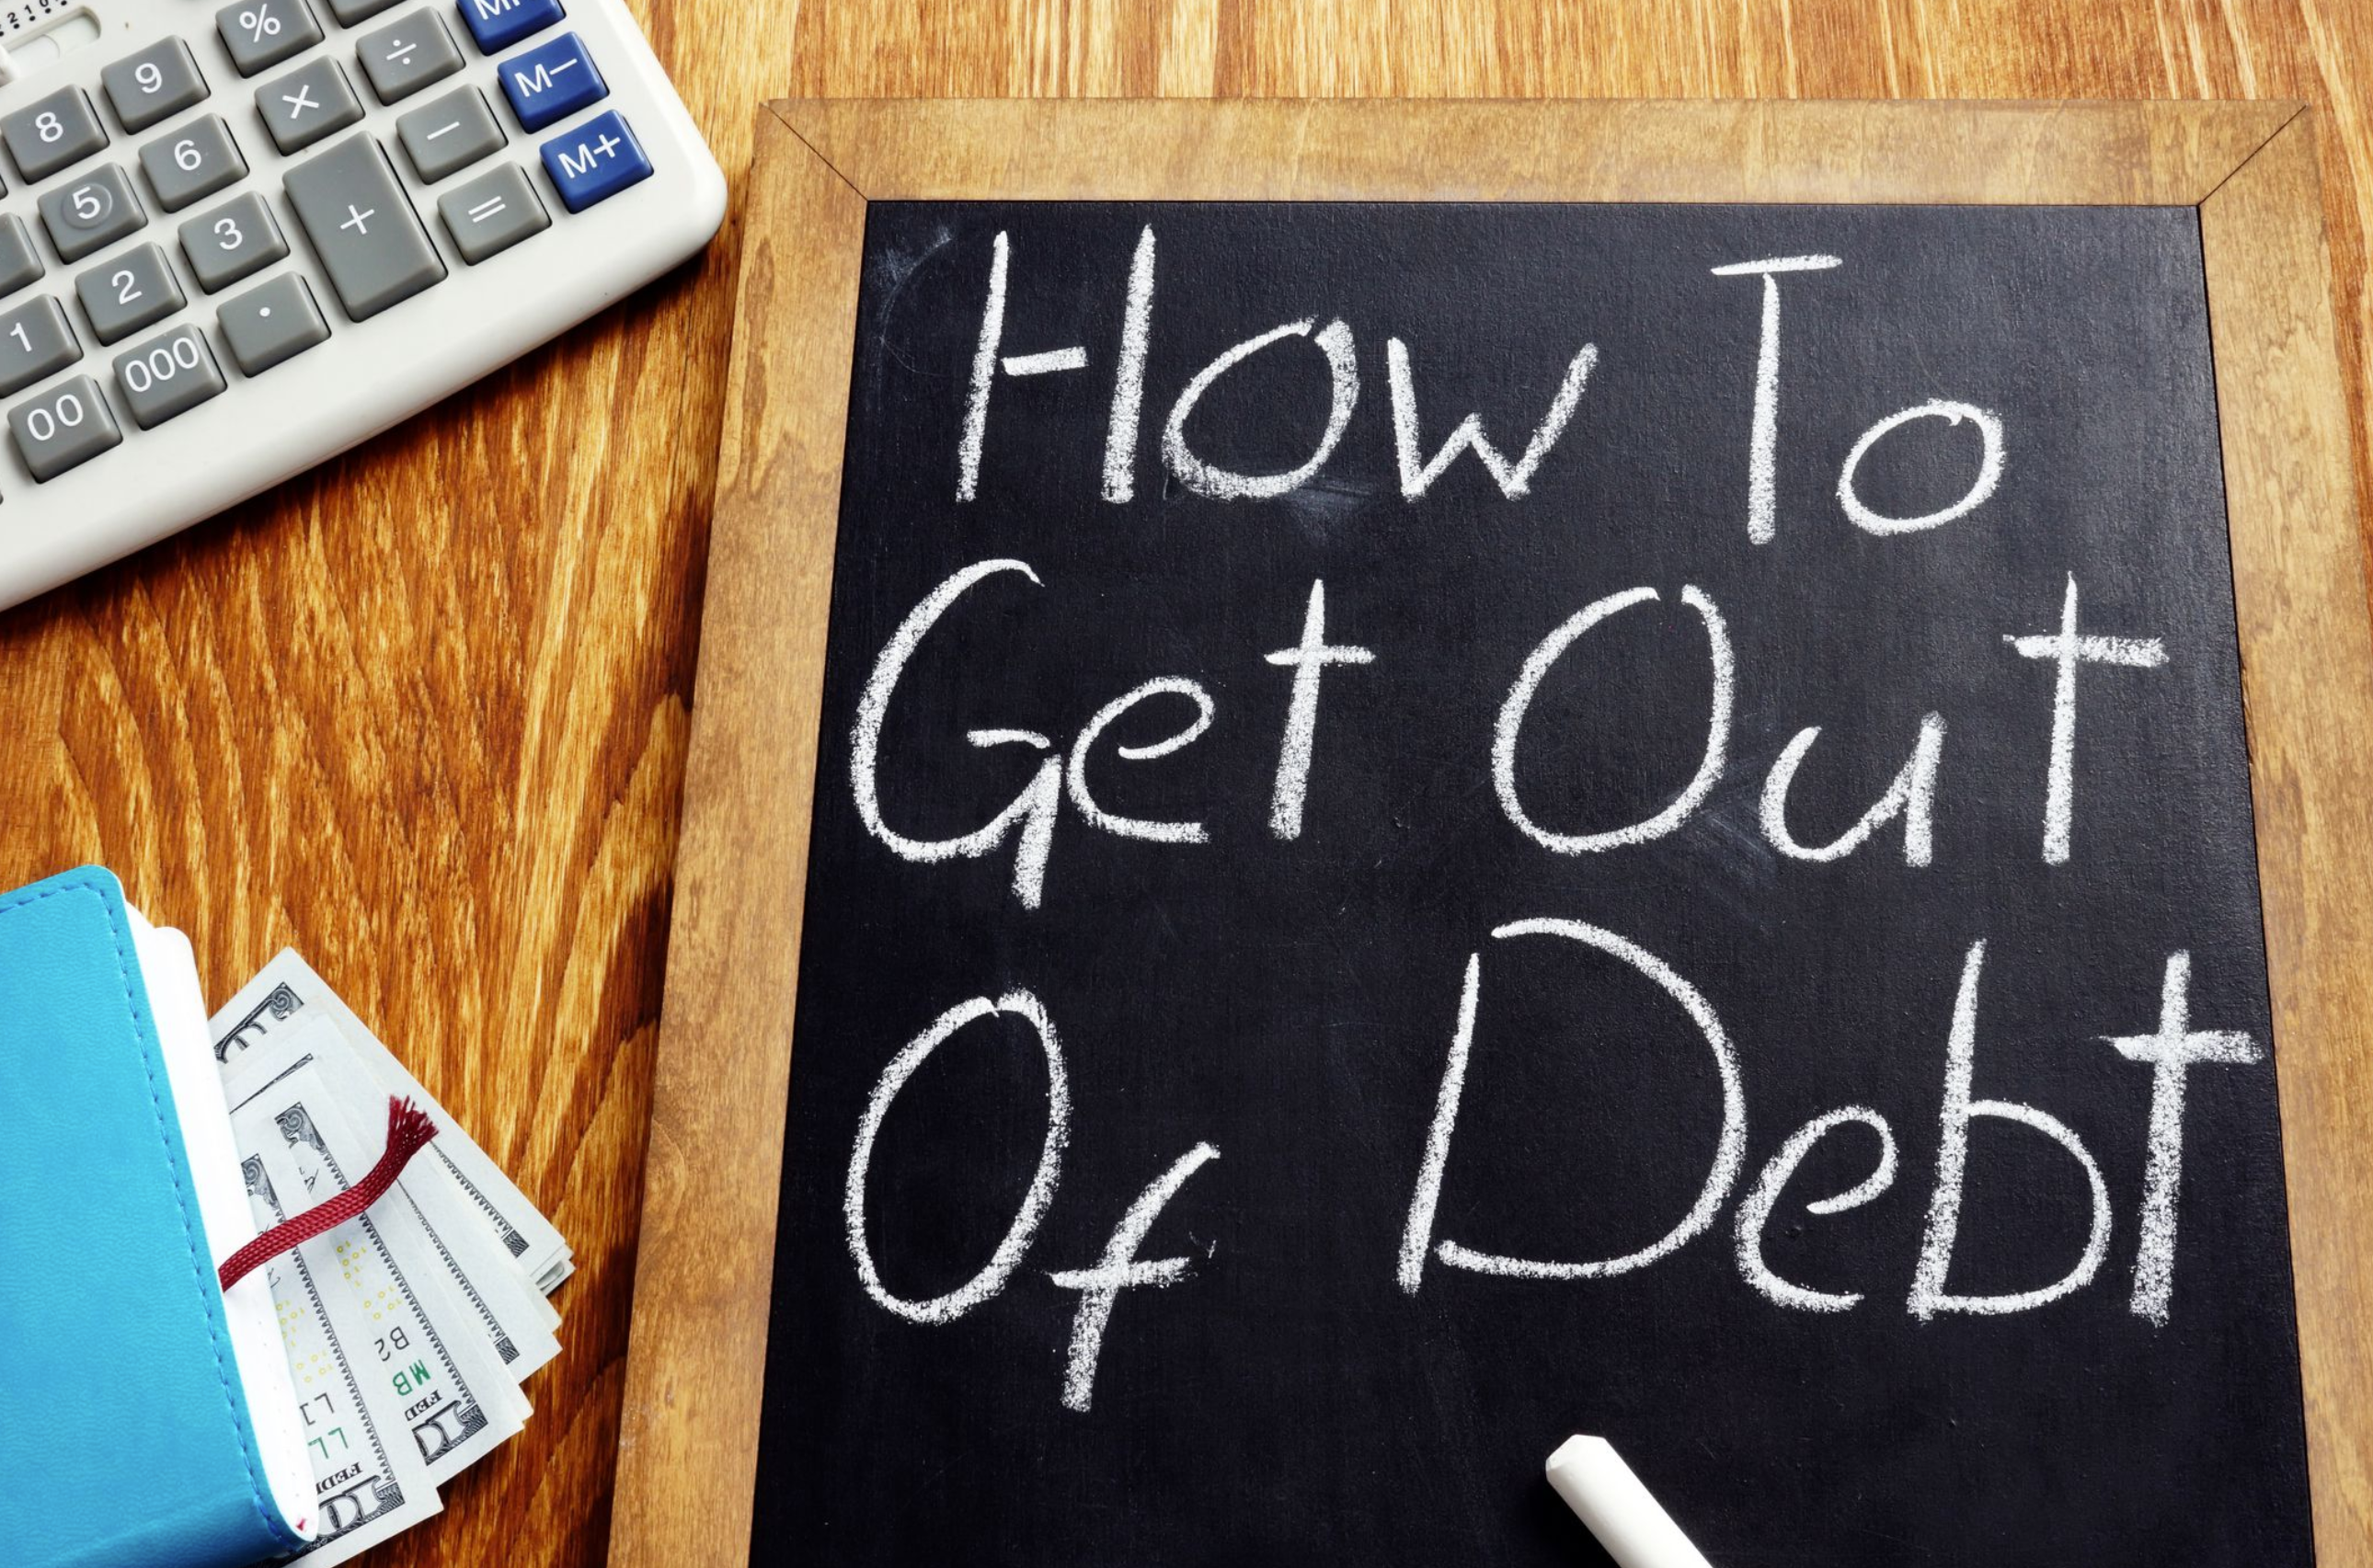 Need Help with Debt? Debt Consolidation Could Be the Answer